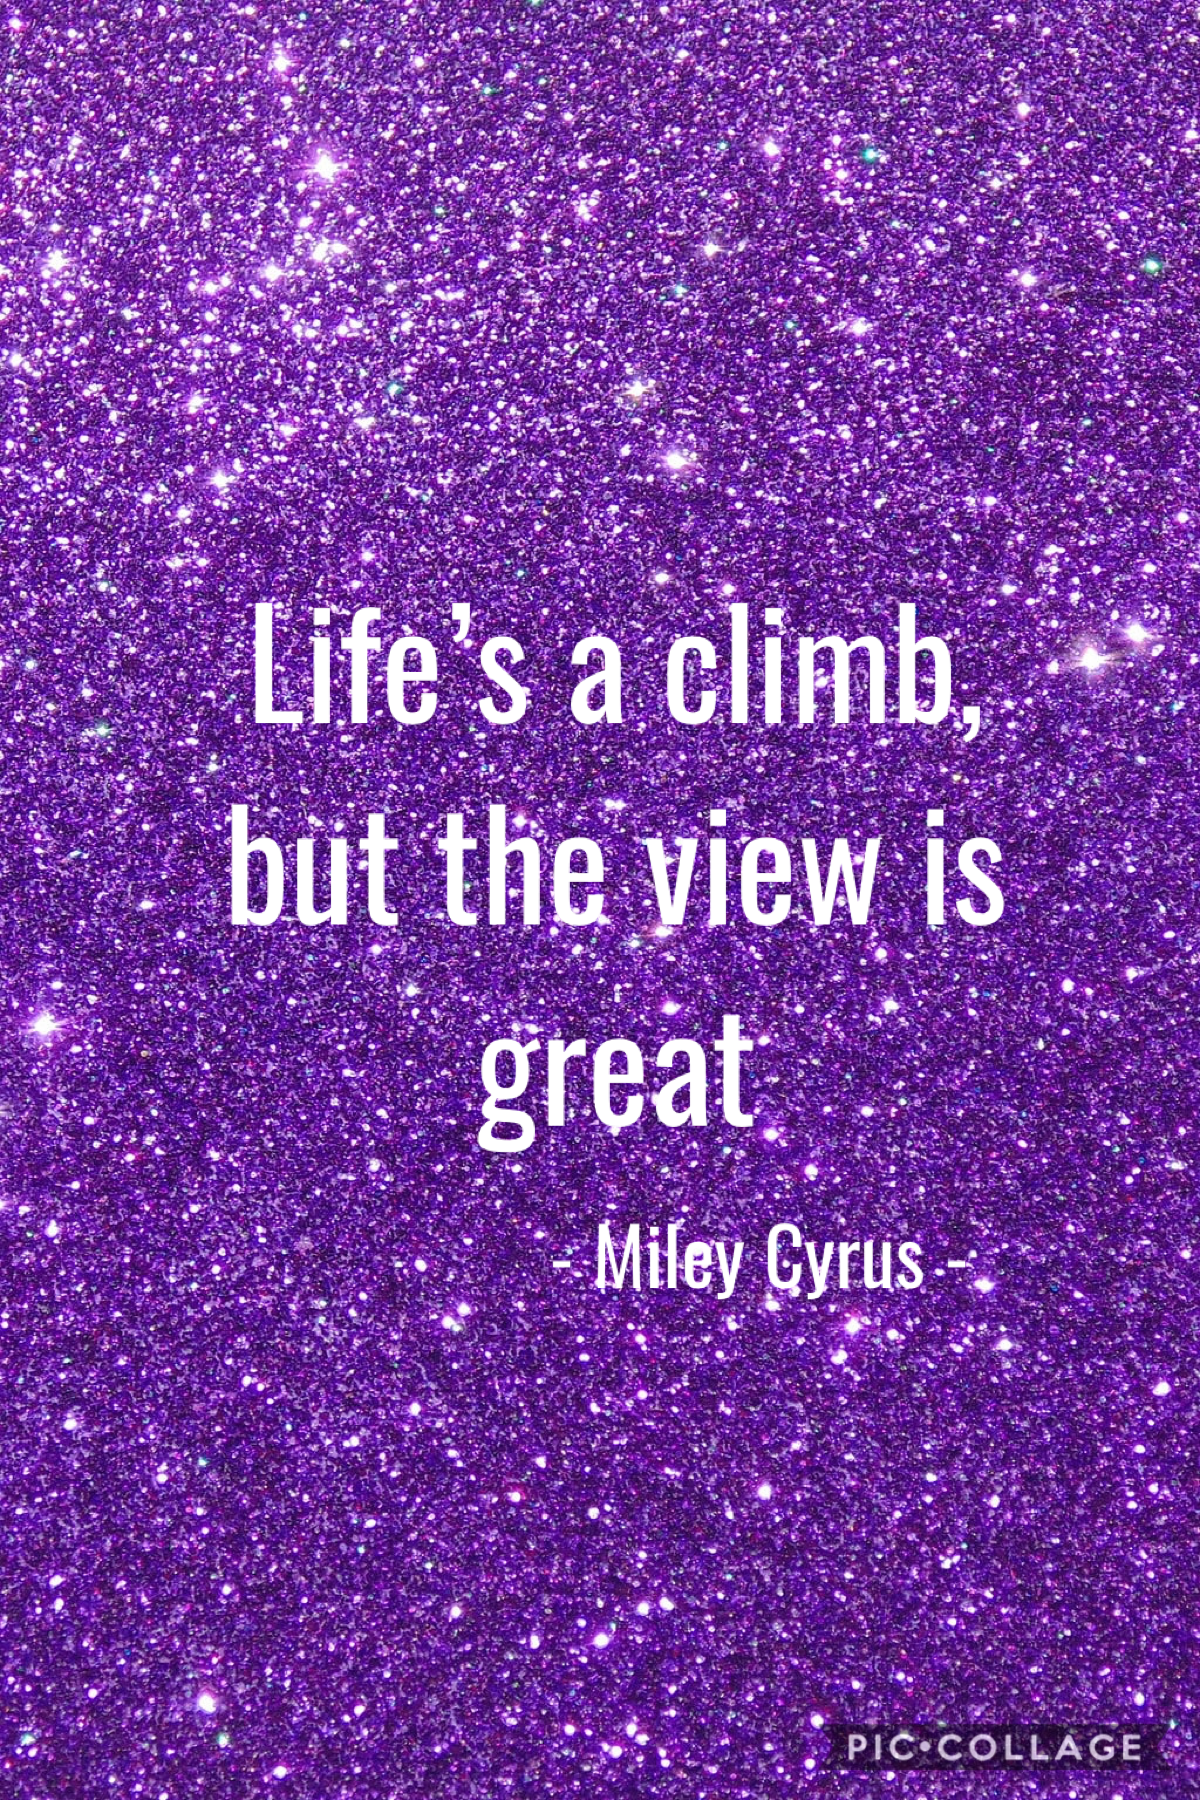 One of the best inspirational quotes from the movie, Hannah Montana.